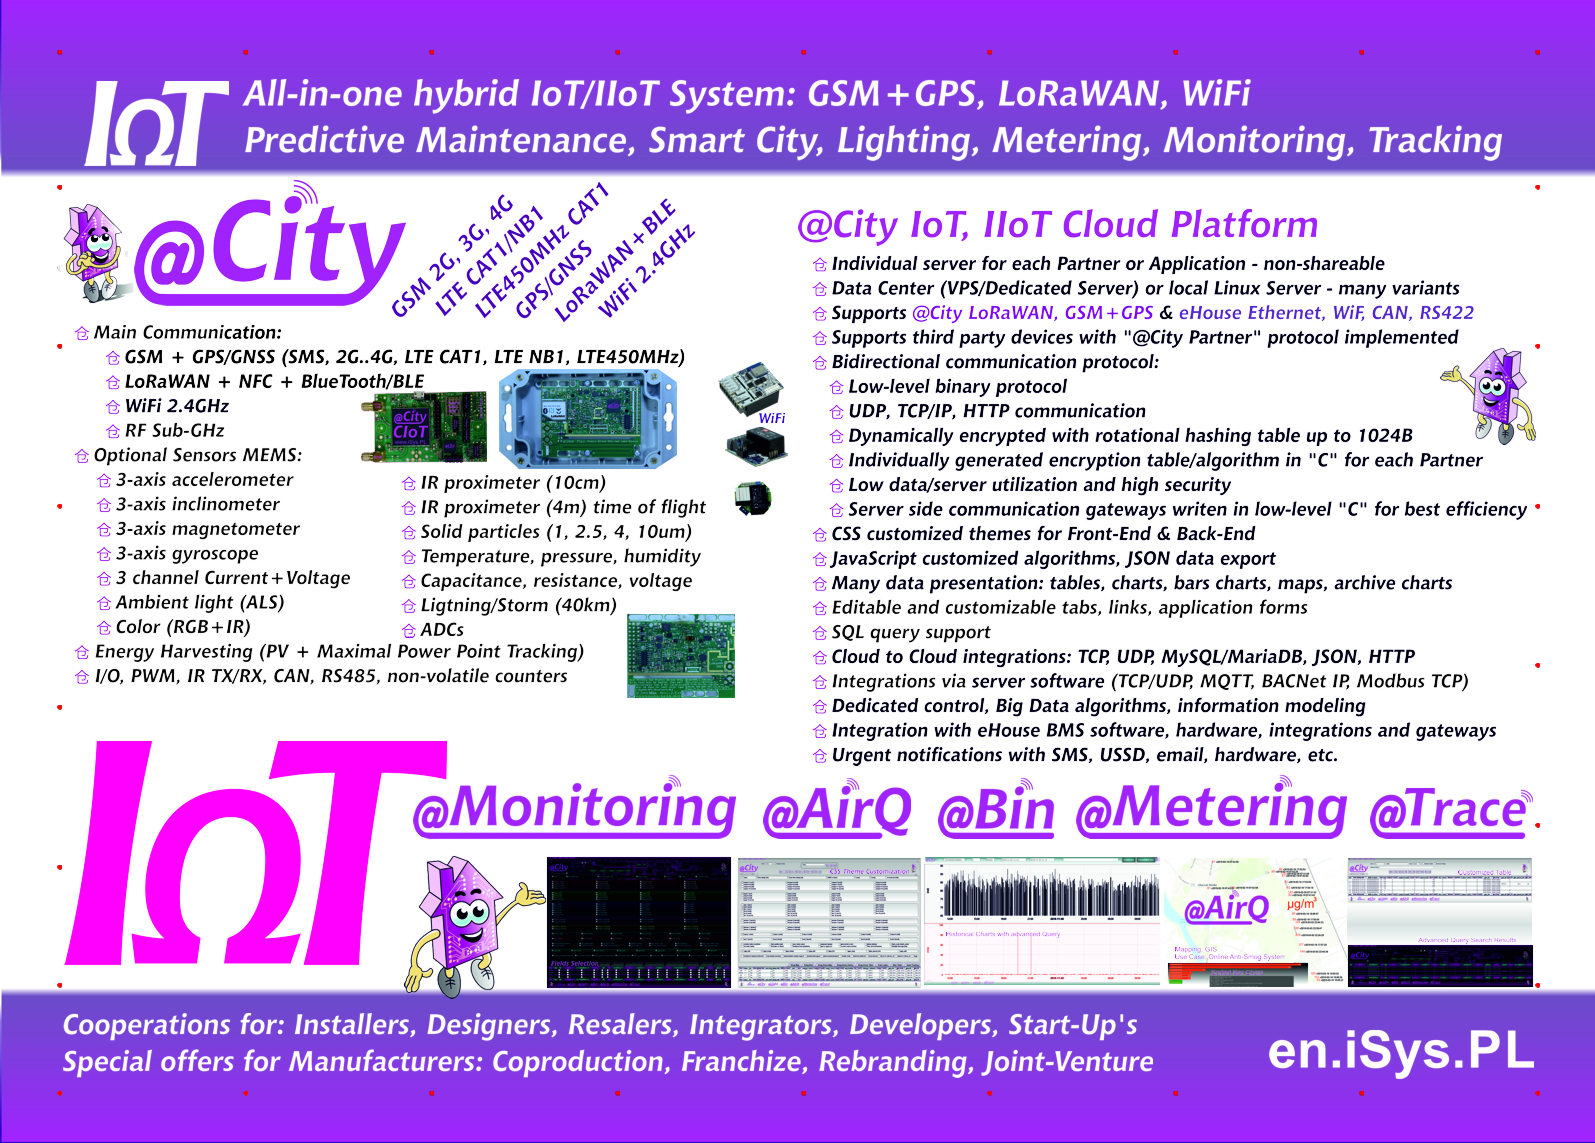 @City complex and integrated IoT/IIoT system  LoRaWAN, GSM, WiFi together with IoT Platform/cloud